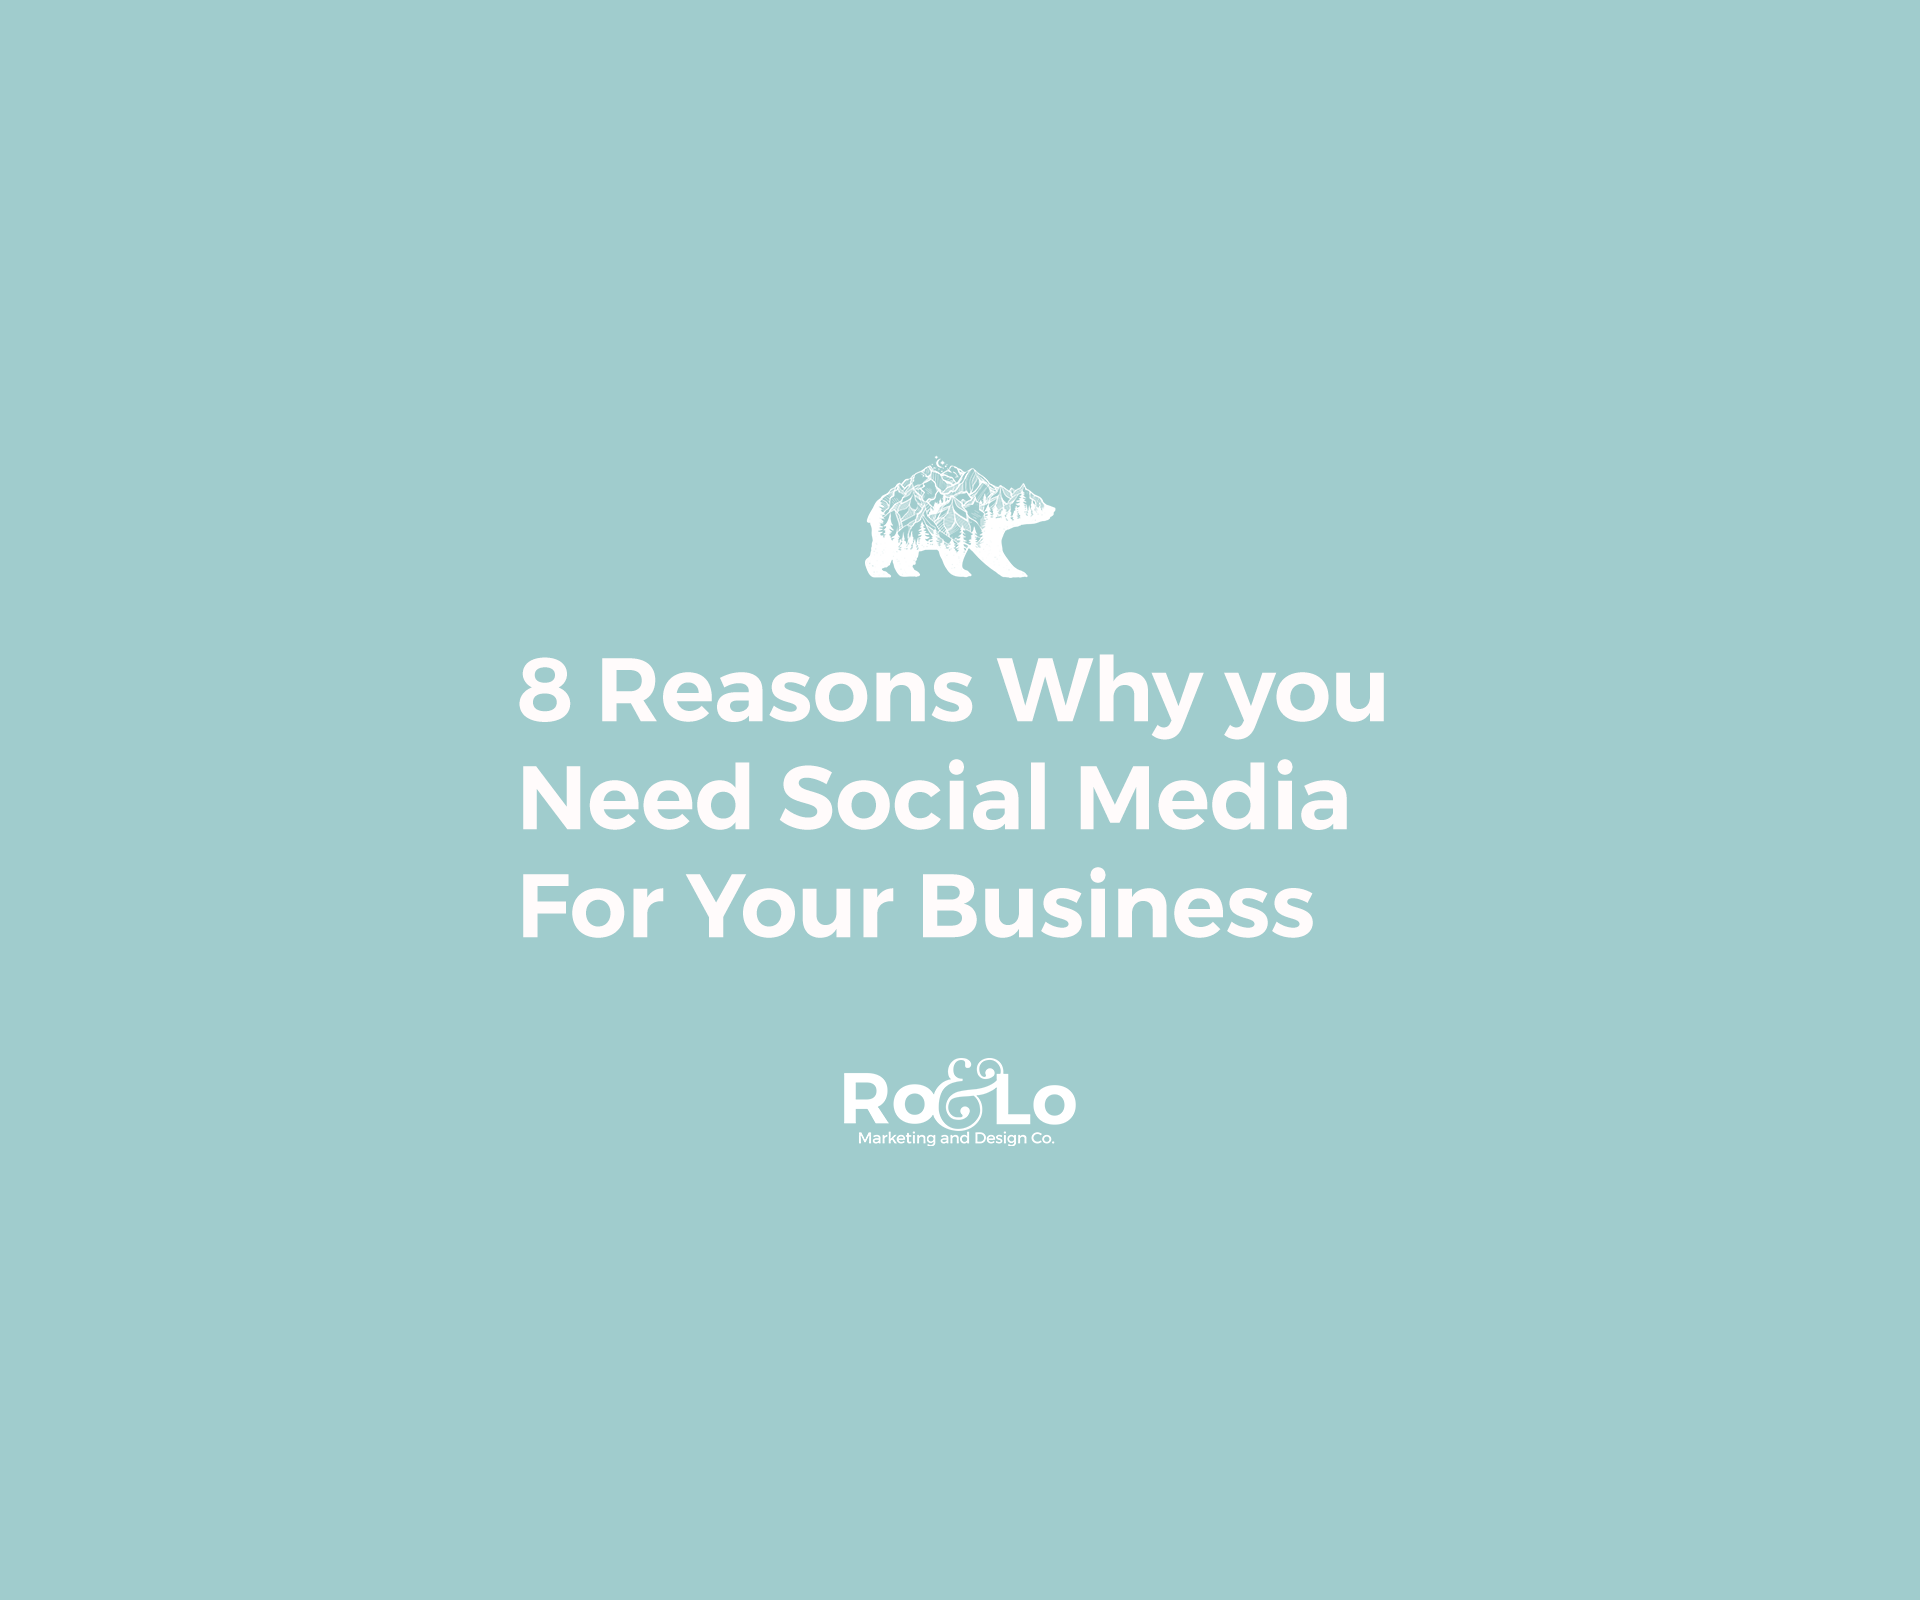 8 Reasons Why You need social media for your businesspng.png